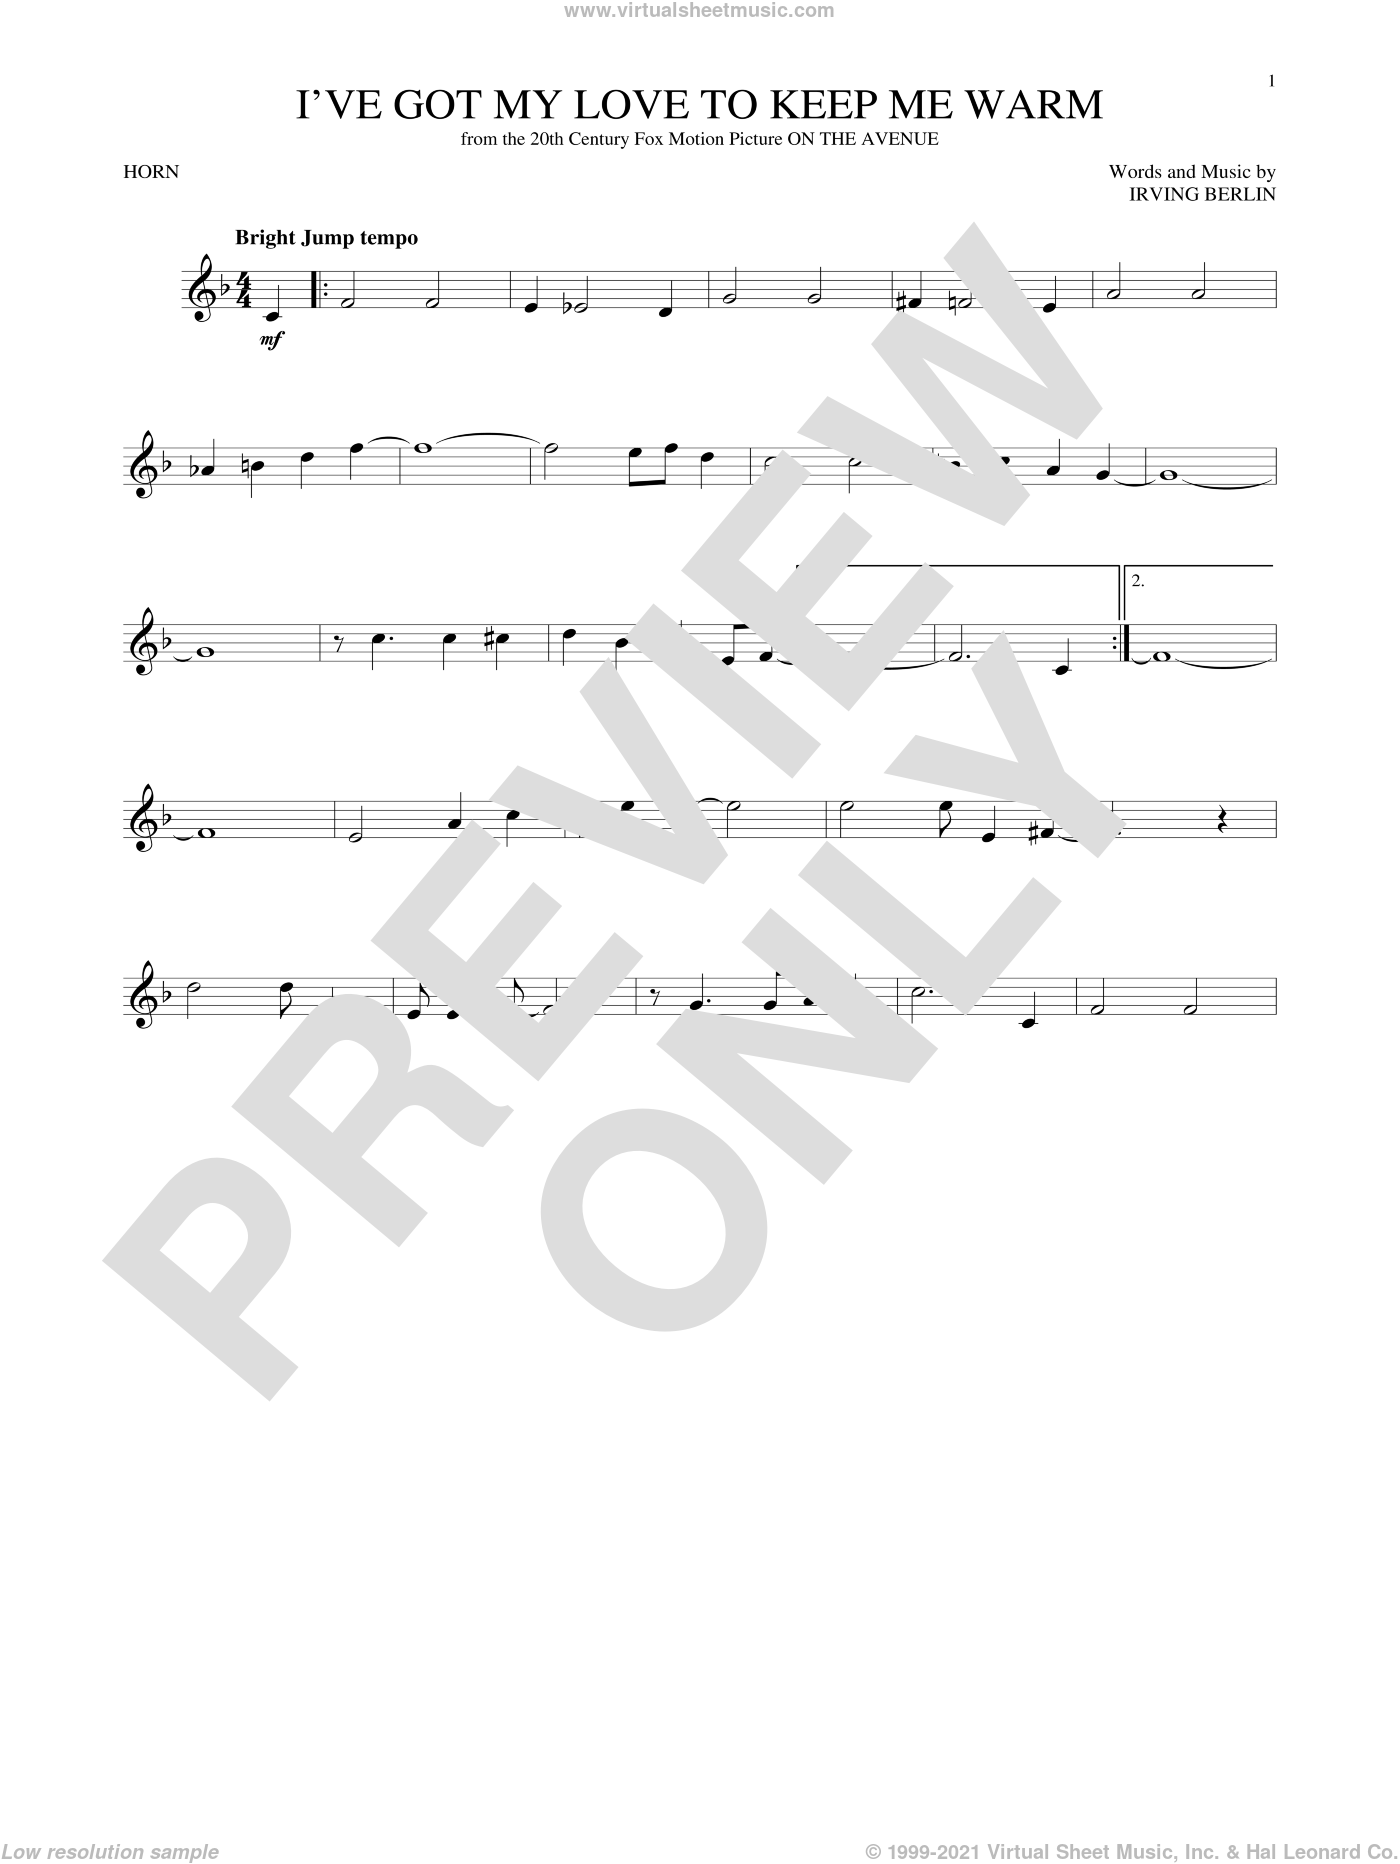 I've Got My Love To Keep Me Warm sheet music for horn solo by Irving Berlin and Benny Goodman, intermediate skill level